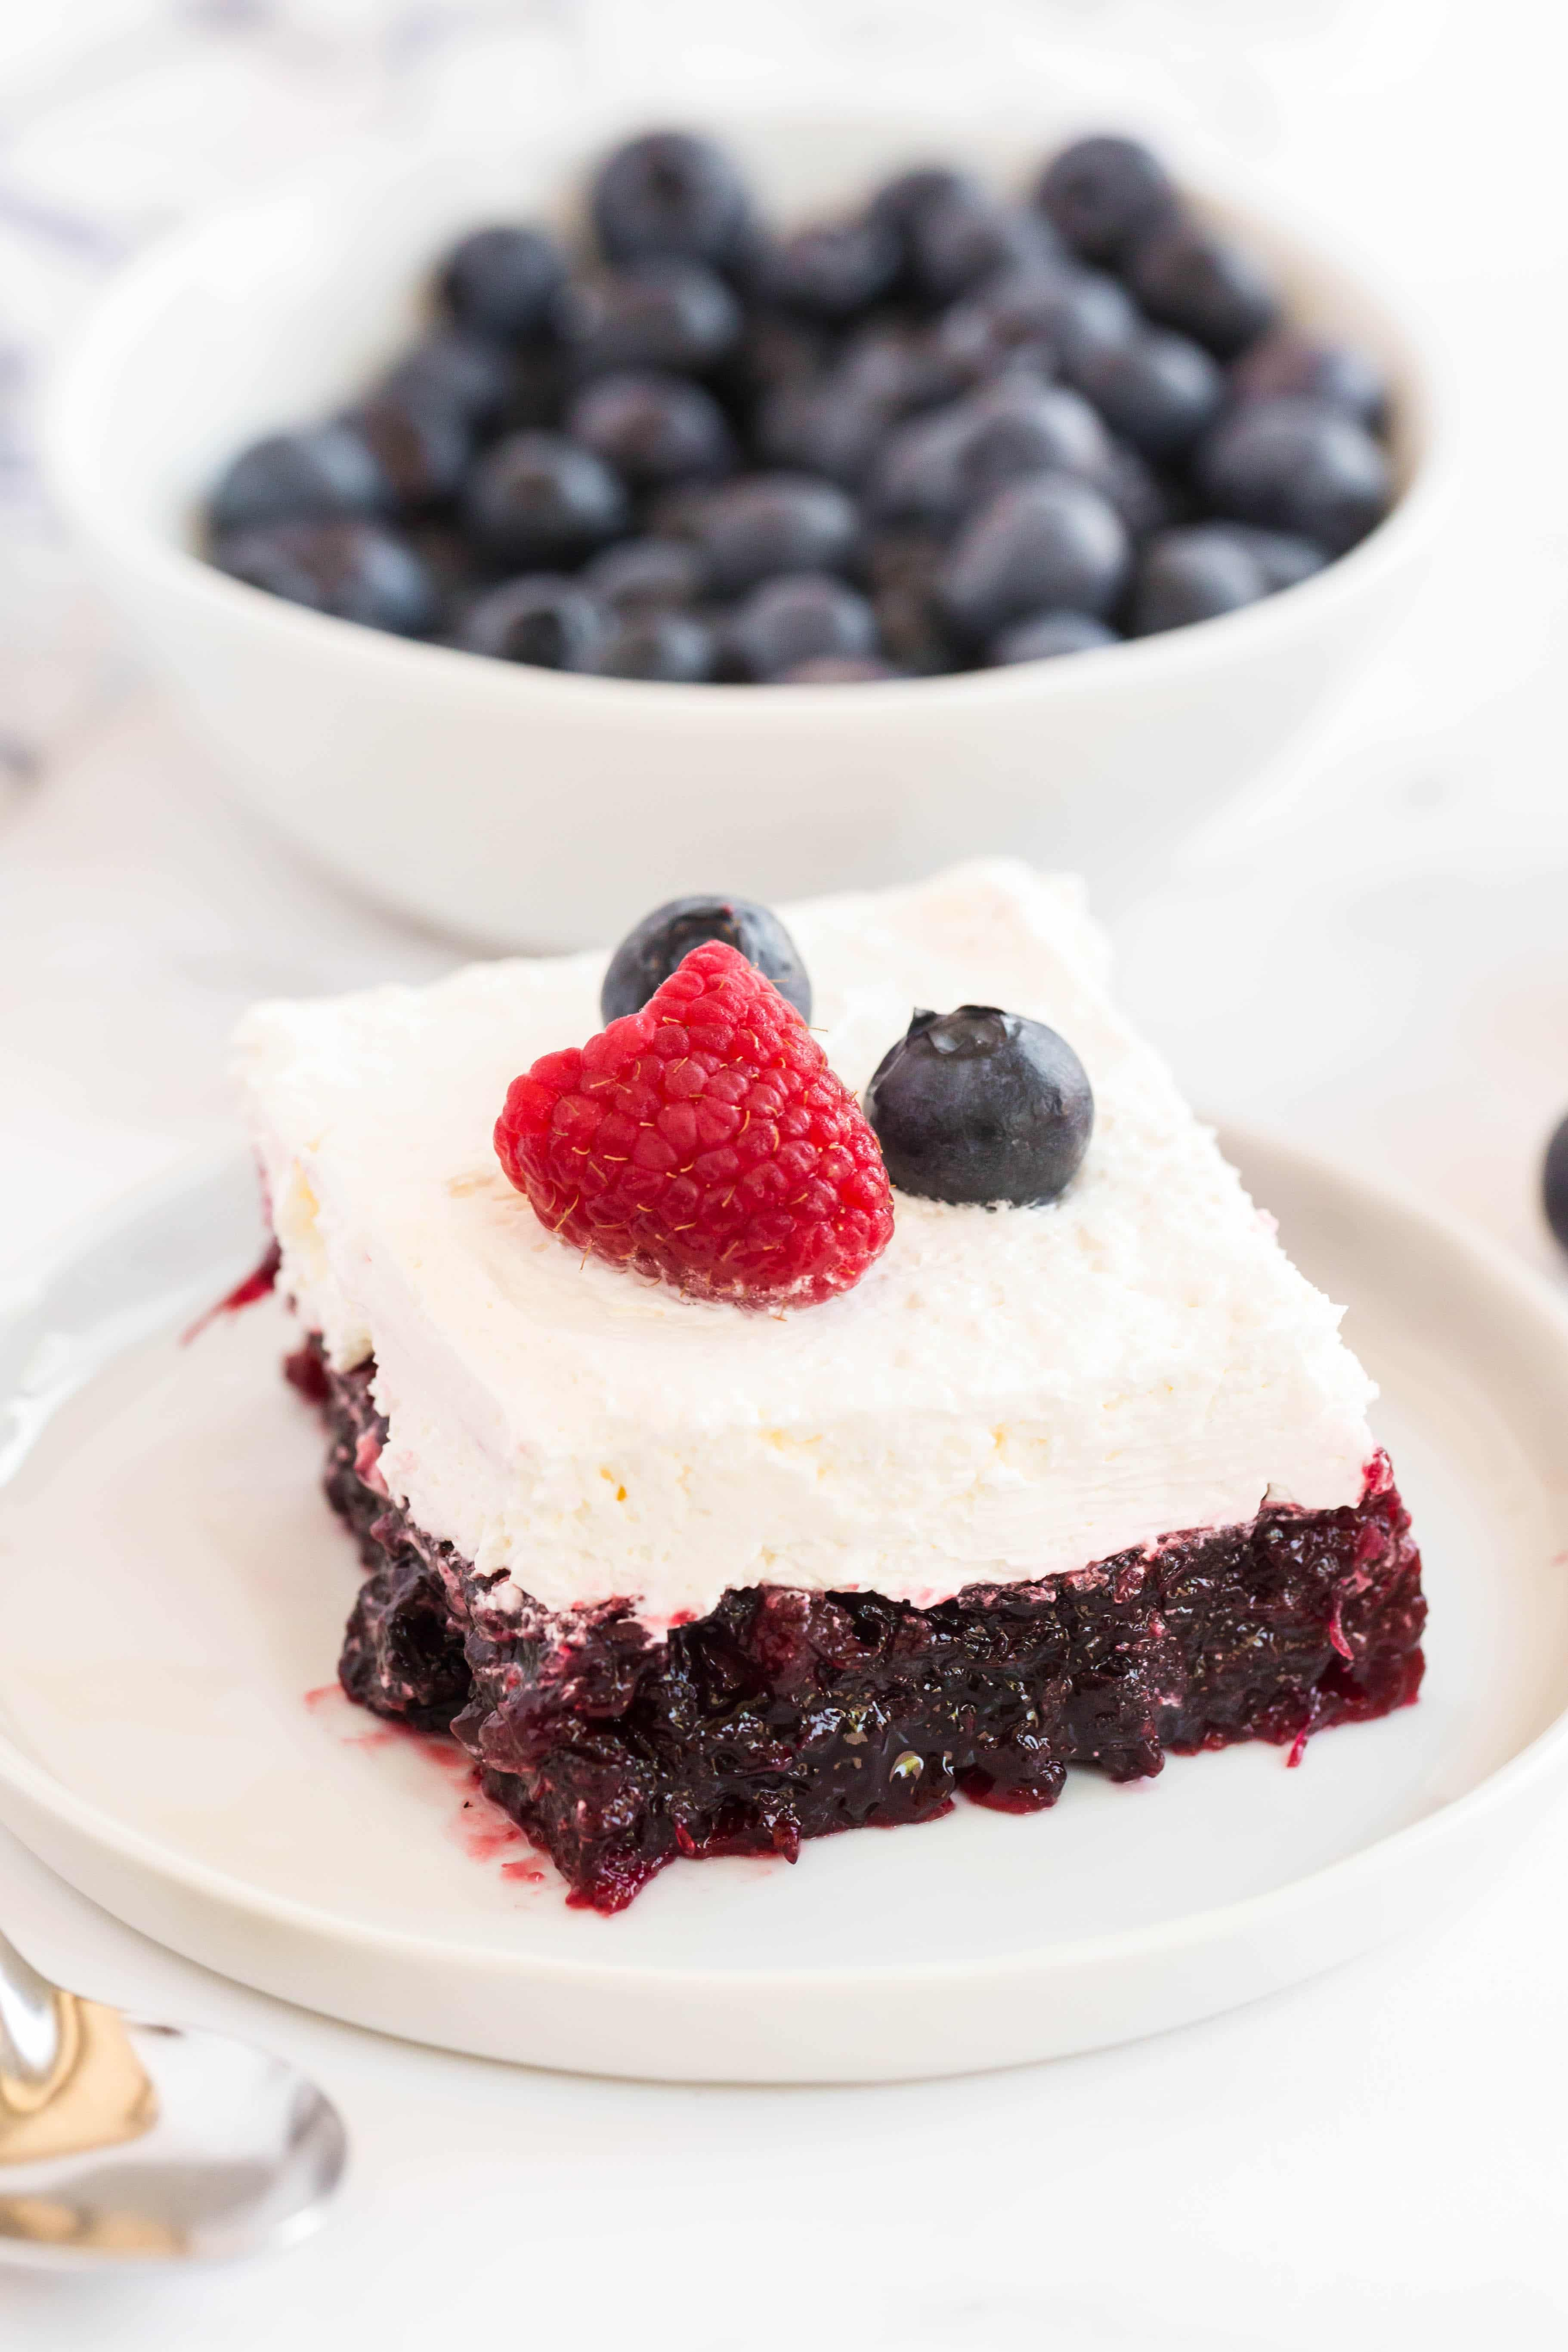 Blueberry Jello Salad is a classic layered dessert that is filled with delicious canned blueberries and topped with a delicious cream layer.